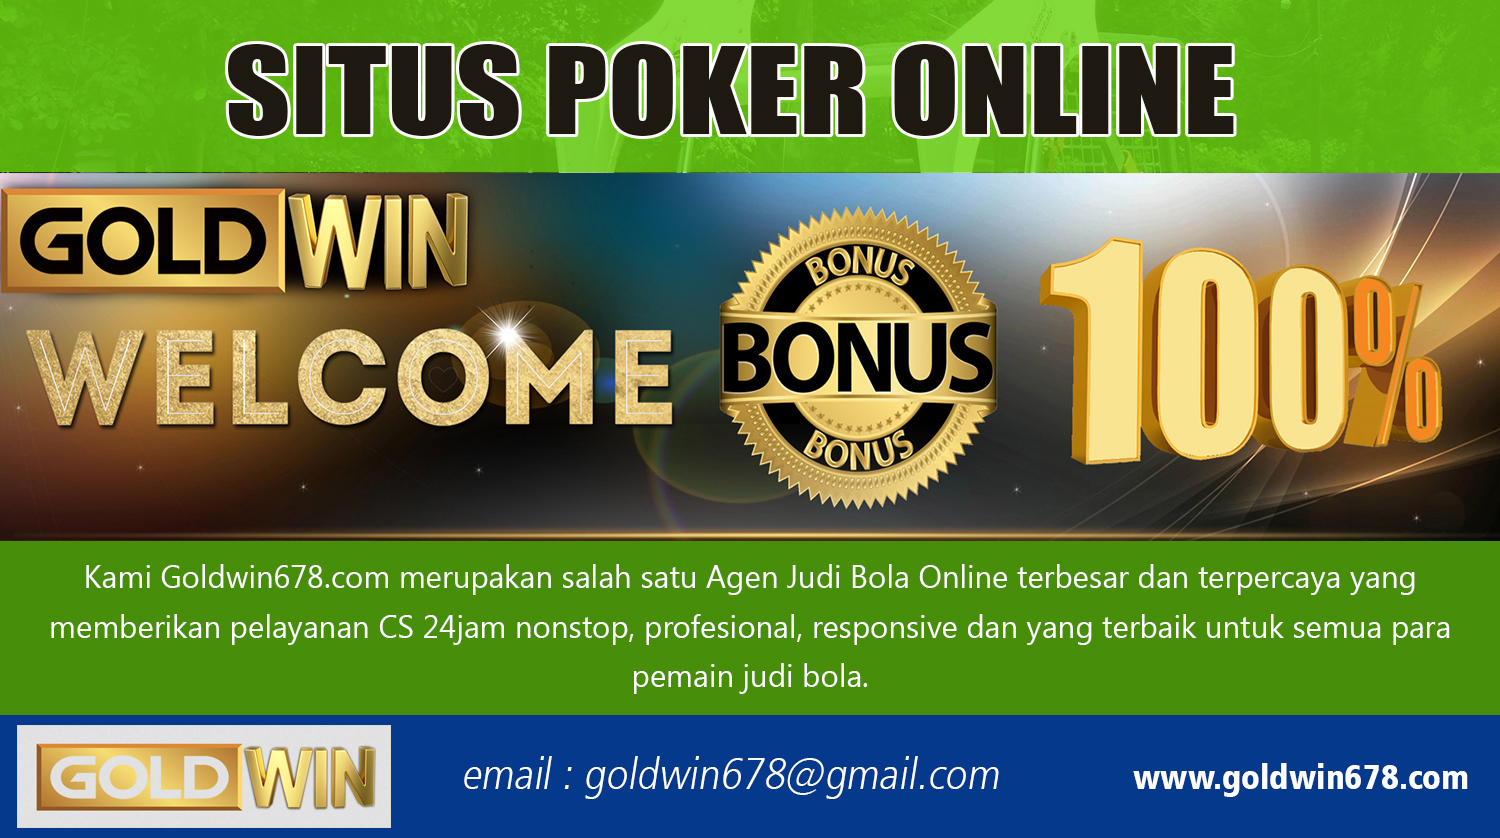 judi <strong></noscript>bola<\/strong>  agen bola  situs poker online  situs judi bola ter» style=»max-width:420px;float:right;padding:10px 0px 10px 10px;border:0px;»>WEBSITE JUDI BOLA AMAN DI INDONESIA</p> </p> <p>ALC menjadi <a href=